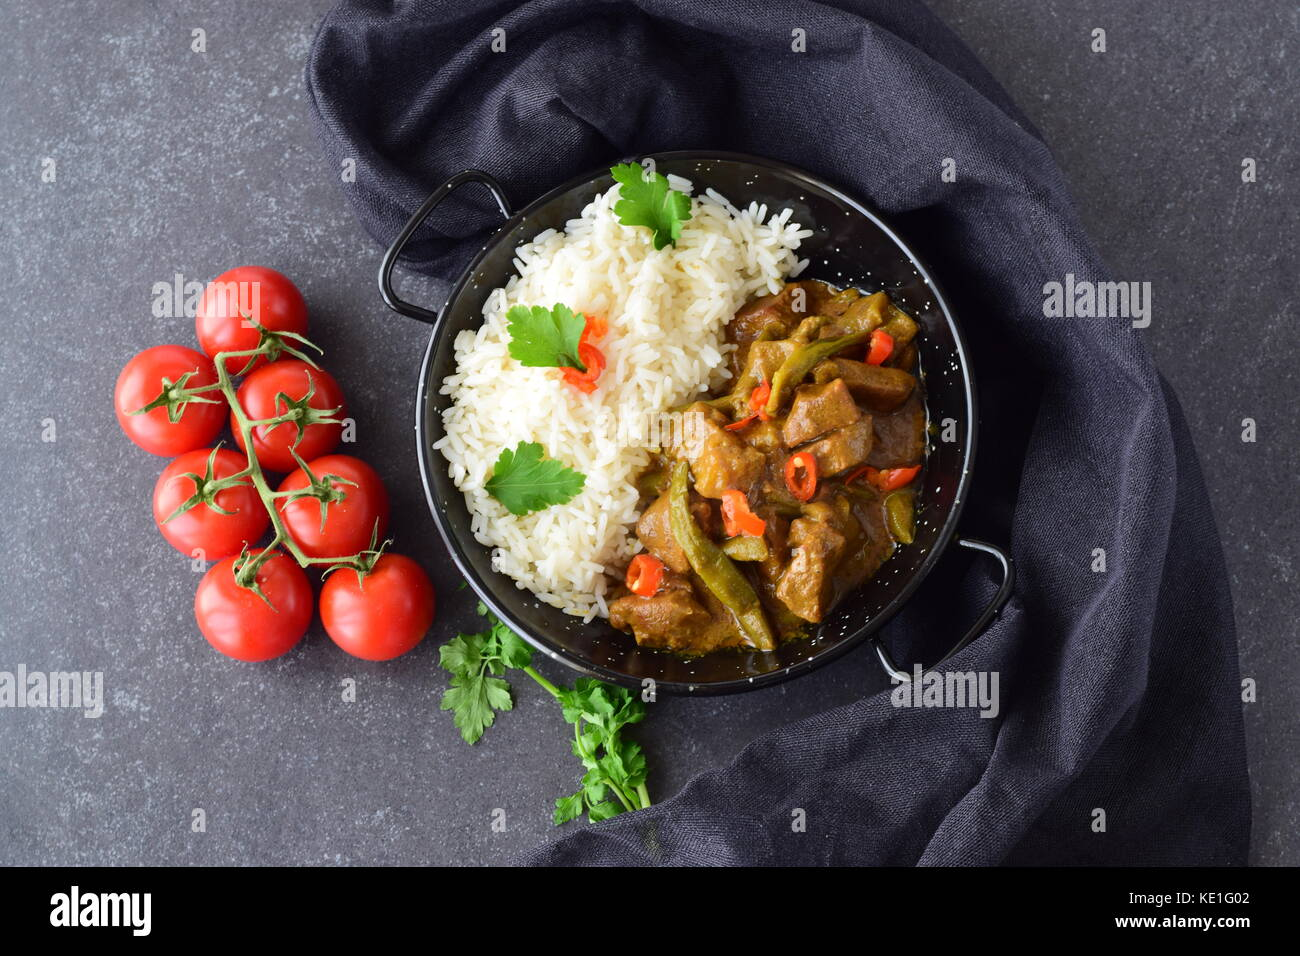 Amazing Pork In Spicy Curry Sauce With Eggplant And Green Beans, Served With Cooked  Rice In A Black Metal Bowl On A Grey Abstract Background. Home Cooking